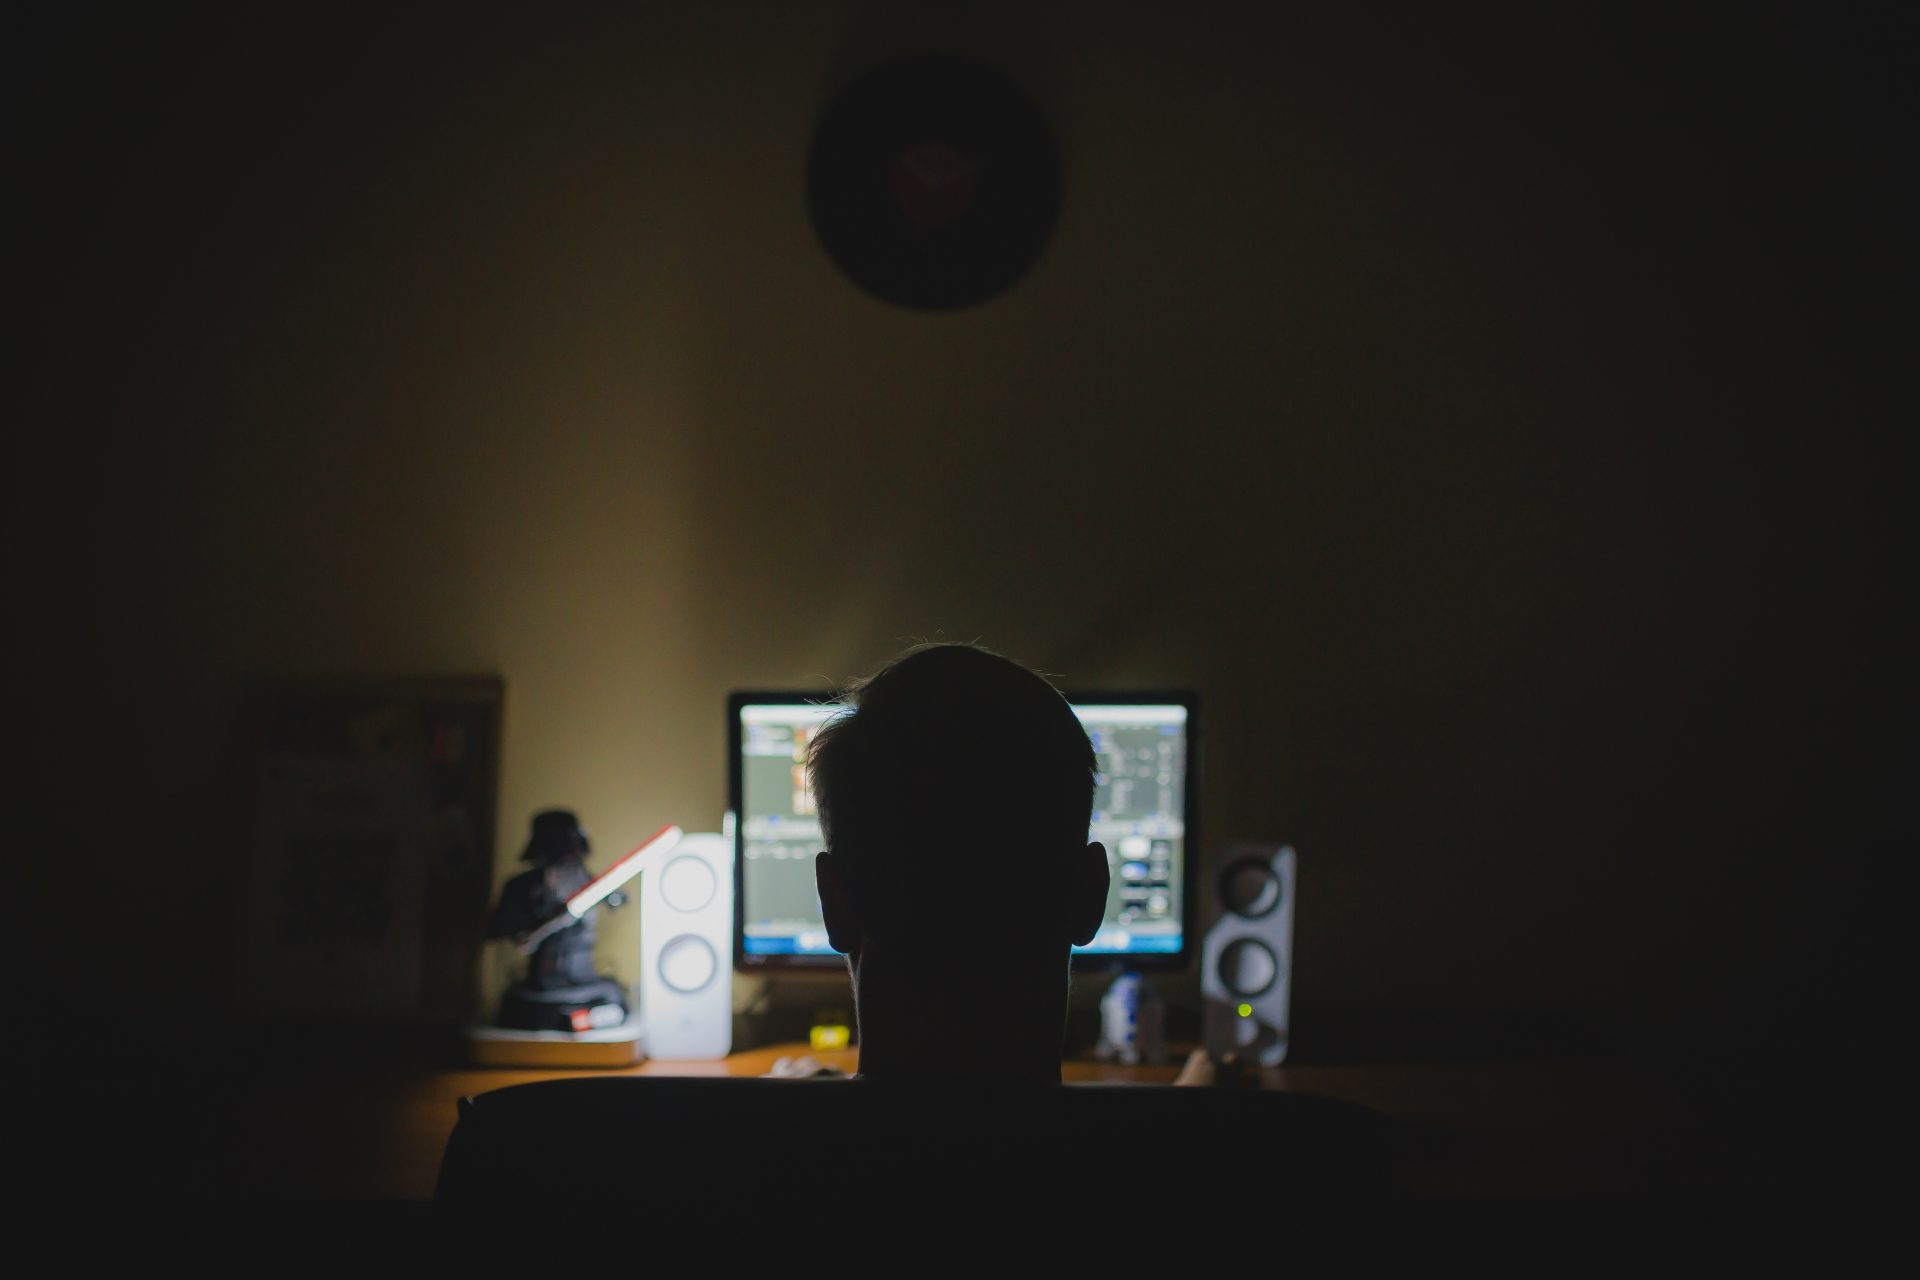 Porn pirating lawyer jailed for five years